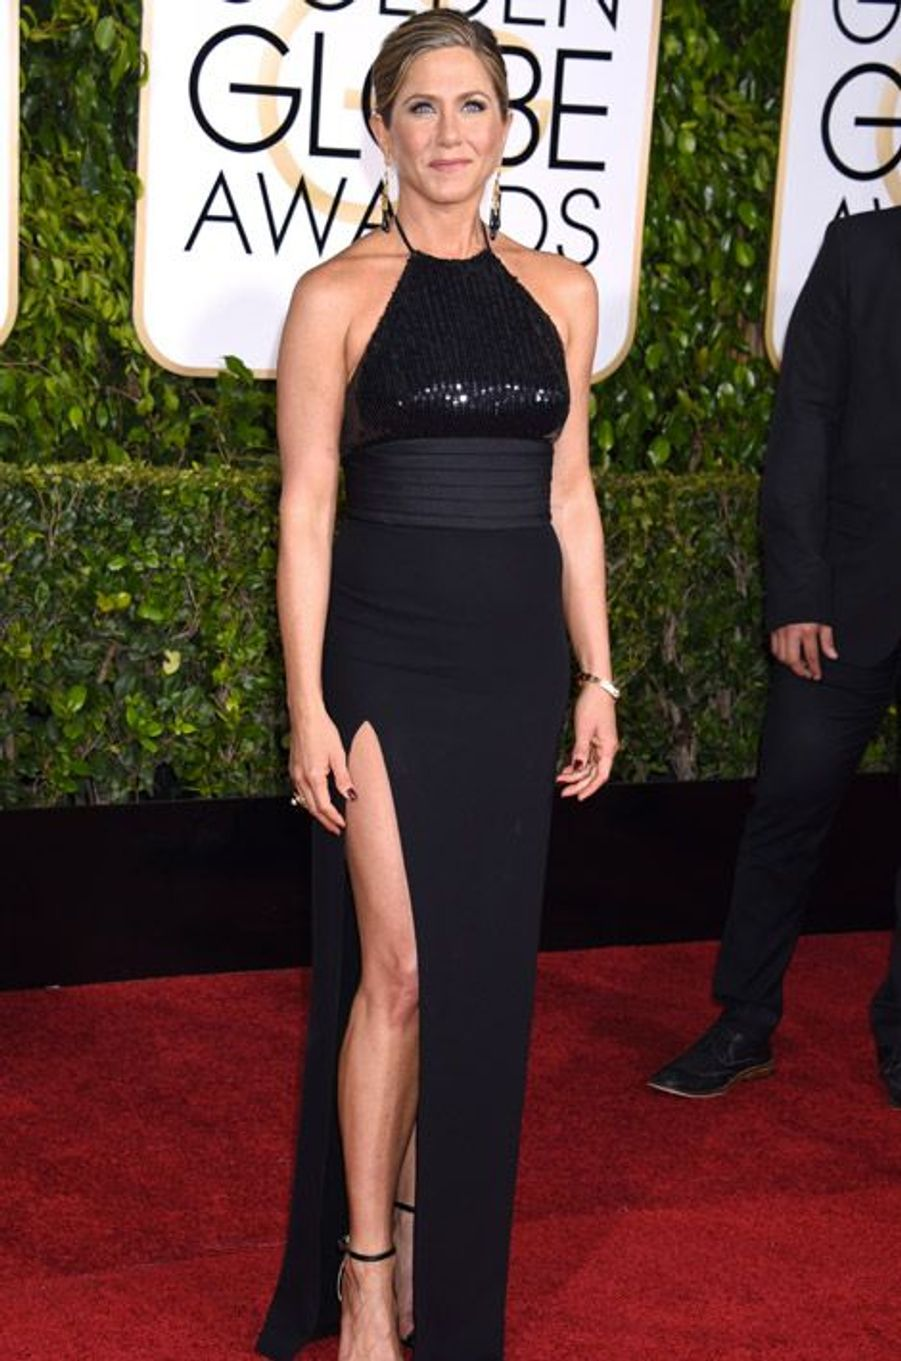 Jennifer Aniston en Saint Laurent aux Golden Globes, le 11 janvier 2015